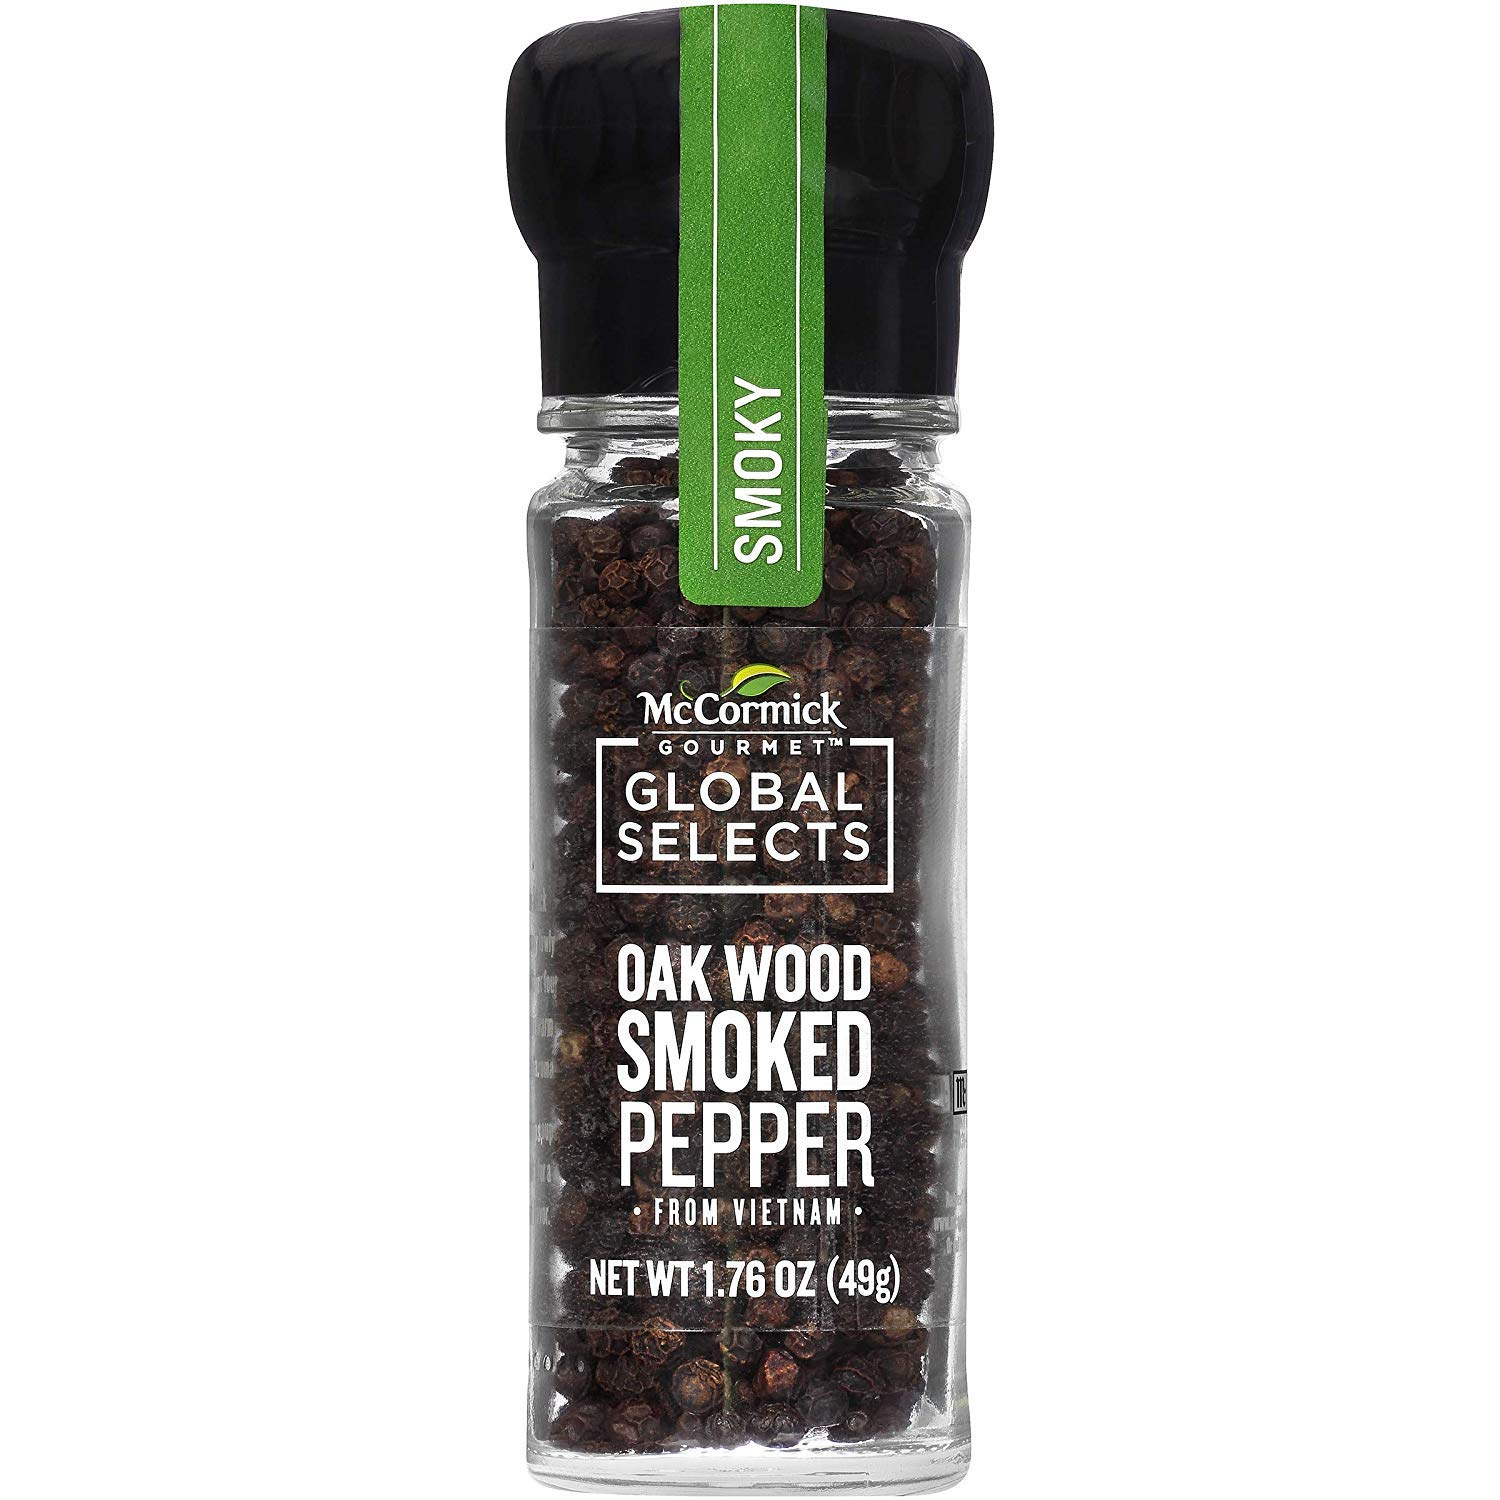 McCormick Gourmet Cheap mail order shopping Global Selects Oak Quality inspection Smoked Wood from Pepper Vie